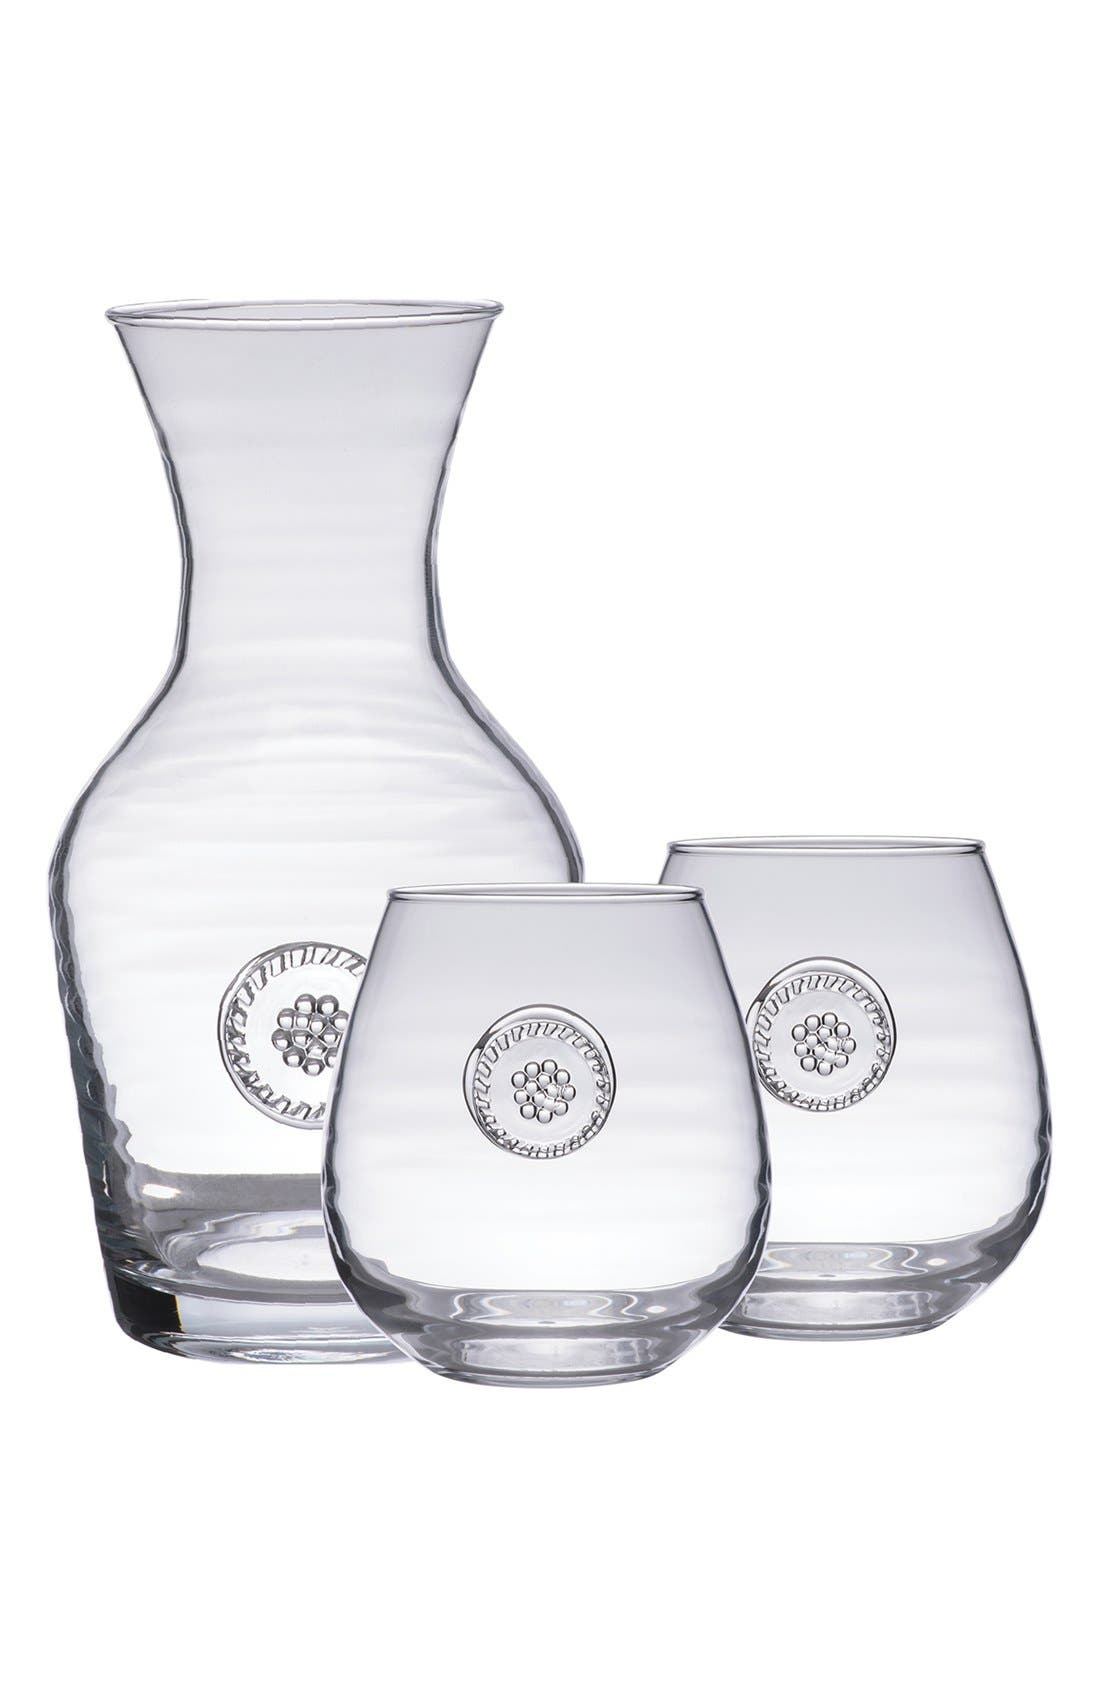 'Berry and Thread' Carafe & StemlessRed WineGlasses,                             Main thumbnail 1, color,                             CLEAR